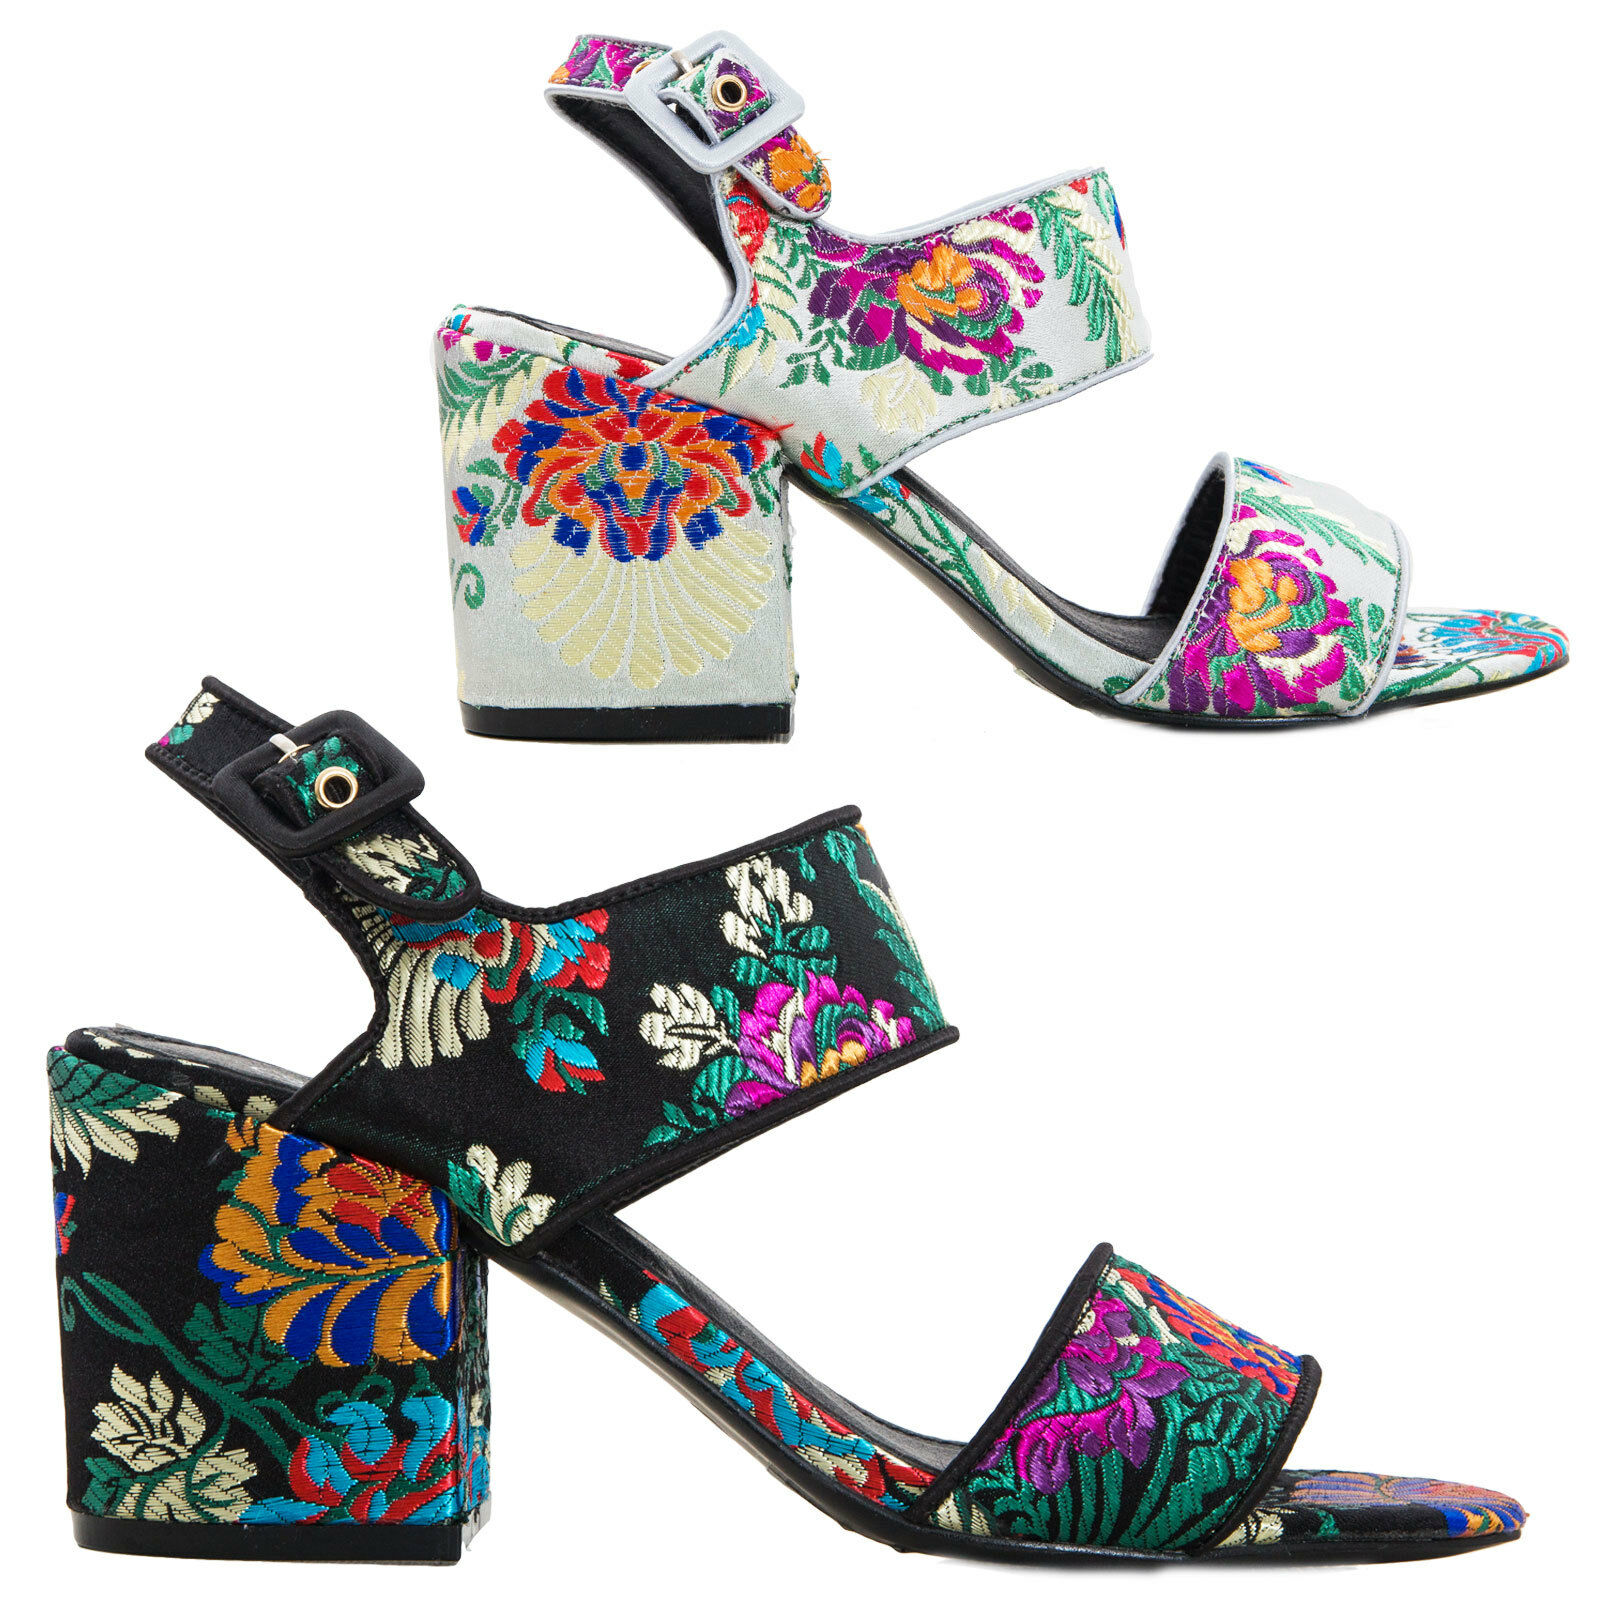 Women's shoes sabot sandals embroidered tapestry heel large new HH6012